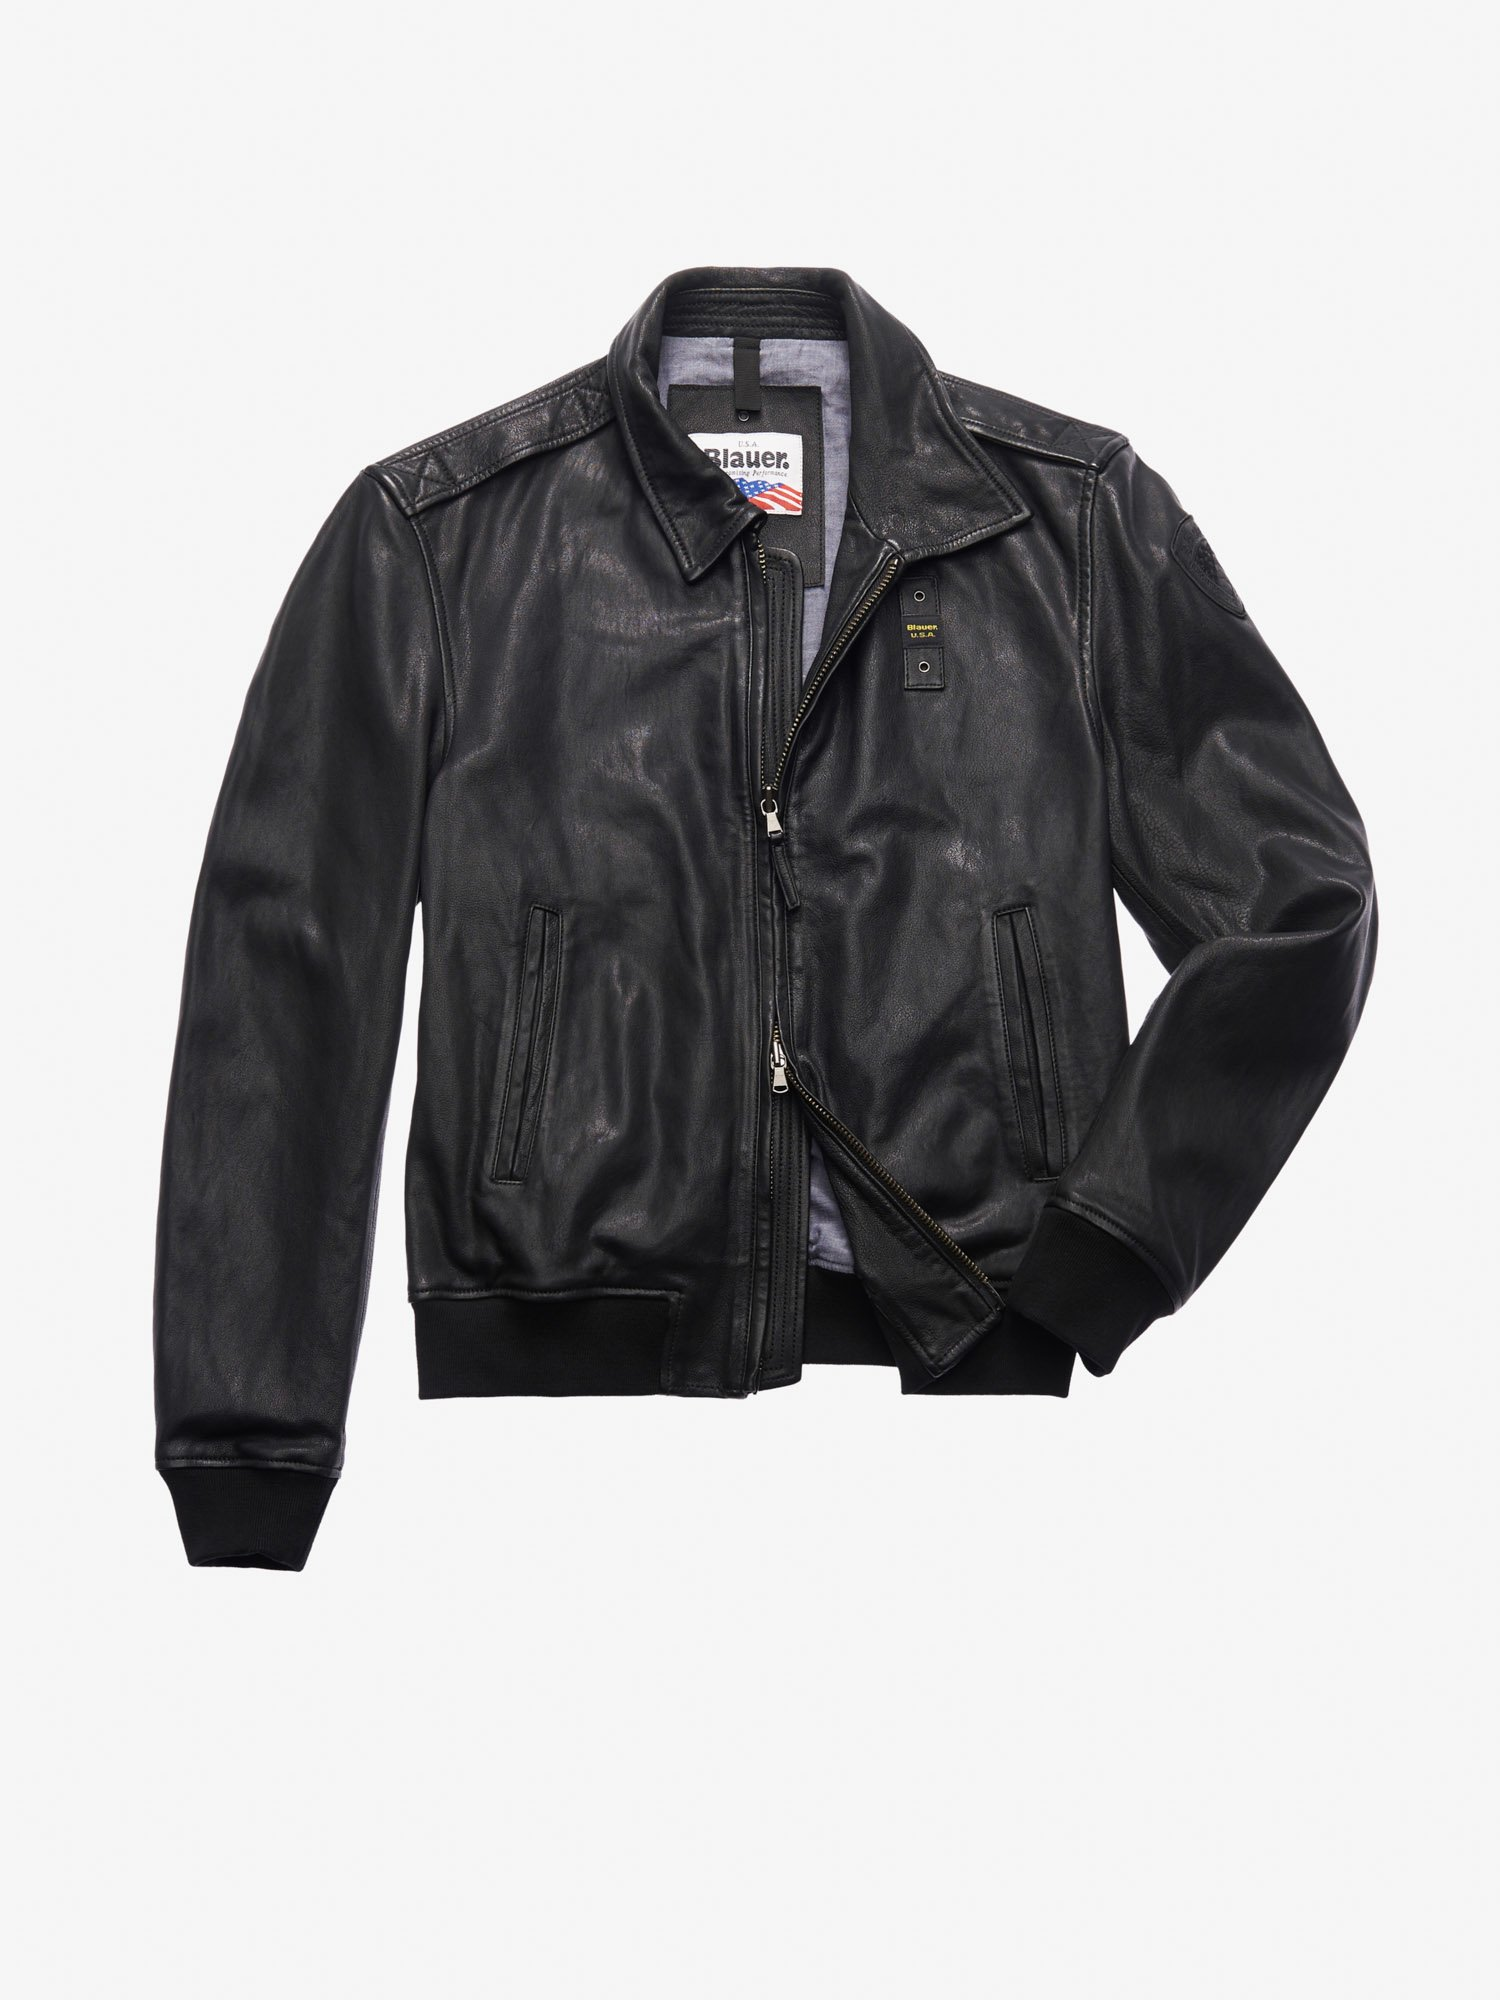 Blauer - SMITH LEATHER BOMBER-STYLE JACKET WITH COLLAR - Black - Blauer